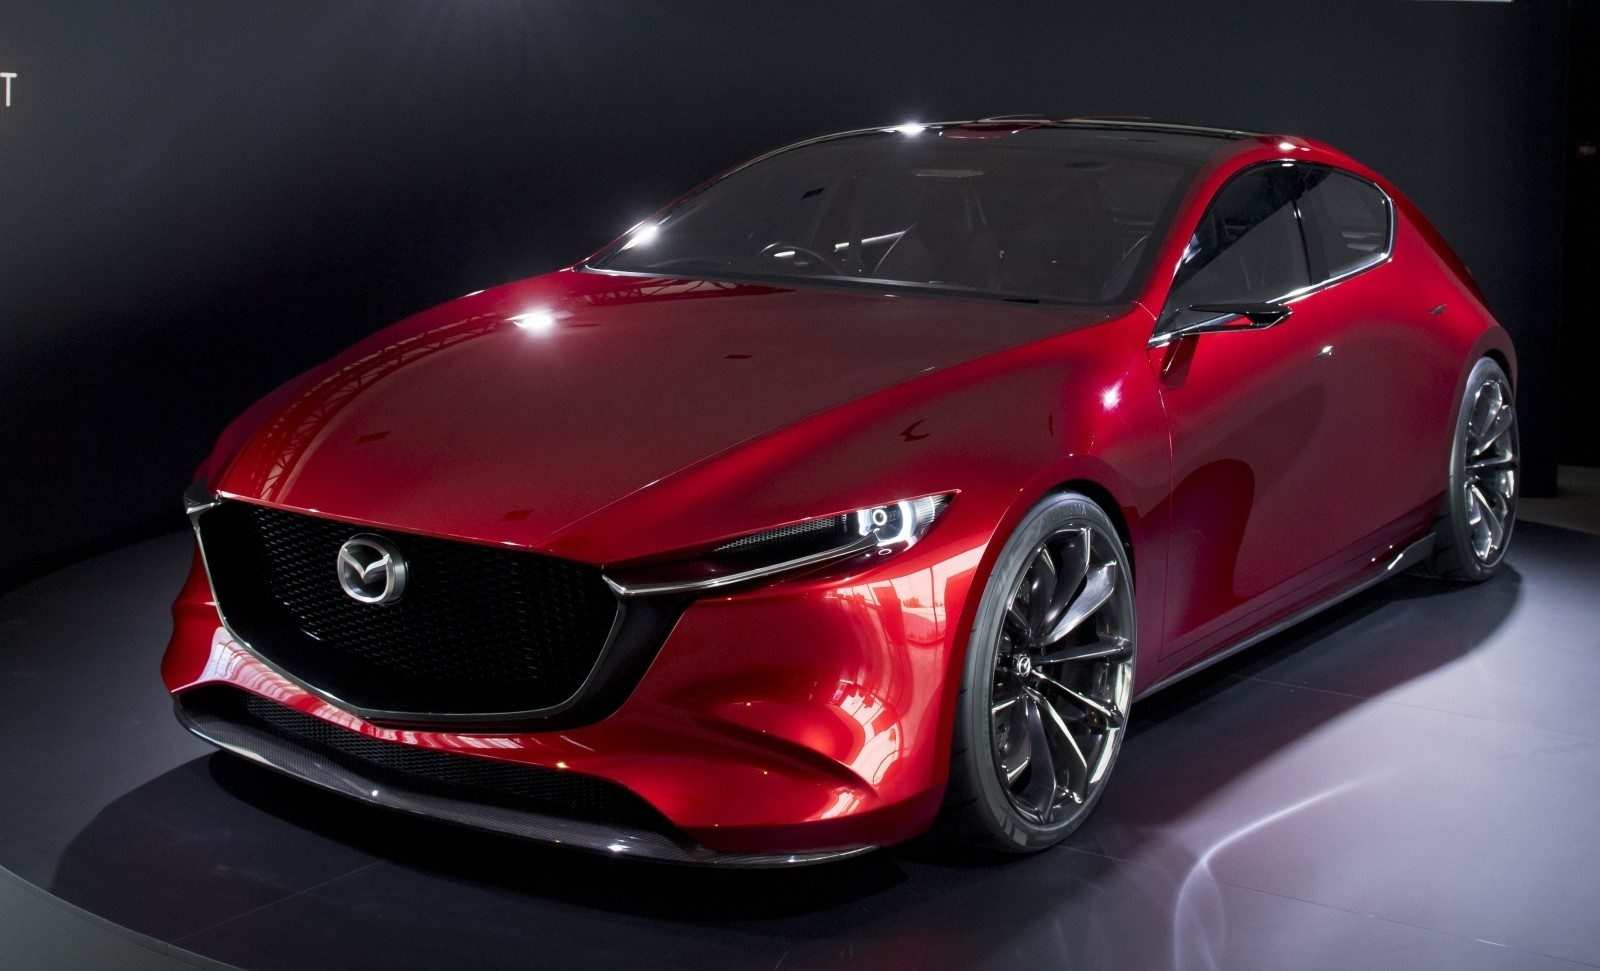 36 Great Mazda Nd 2019 Spy Shoot Style for Mazda Nd 2019 Spy Shoot